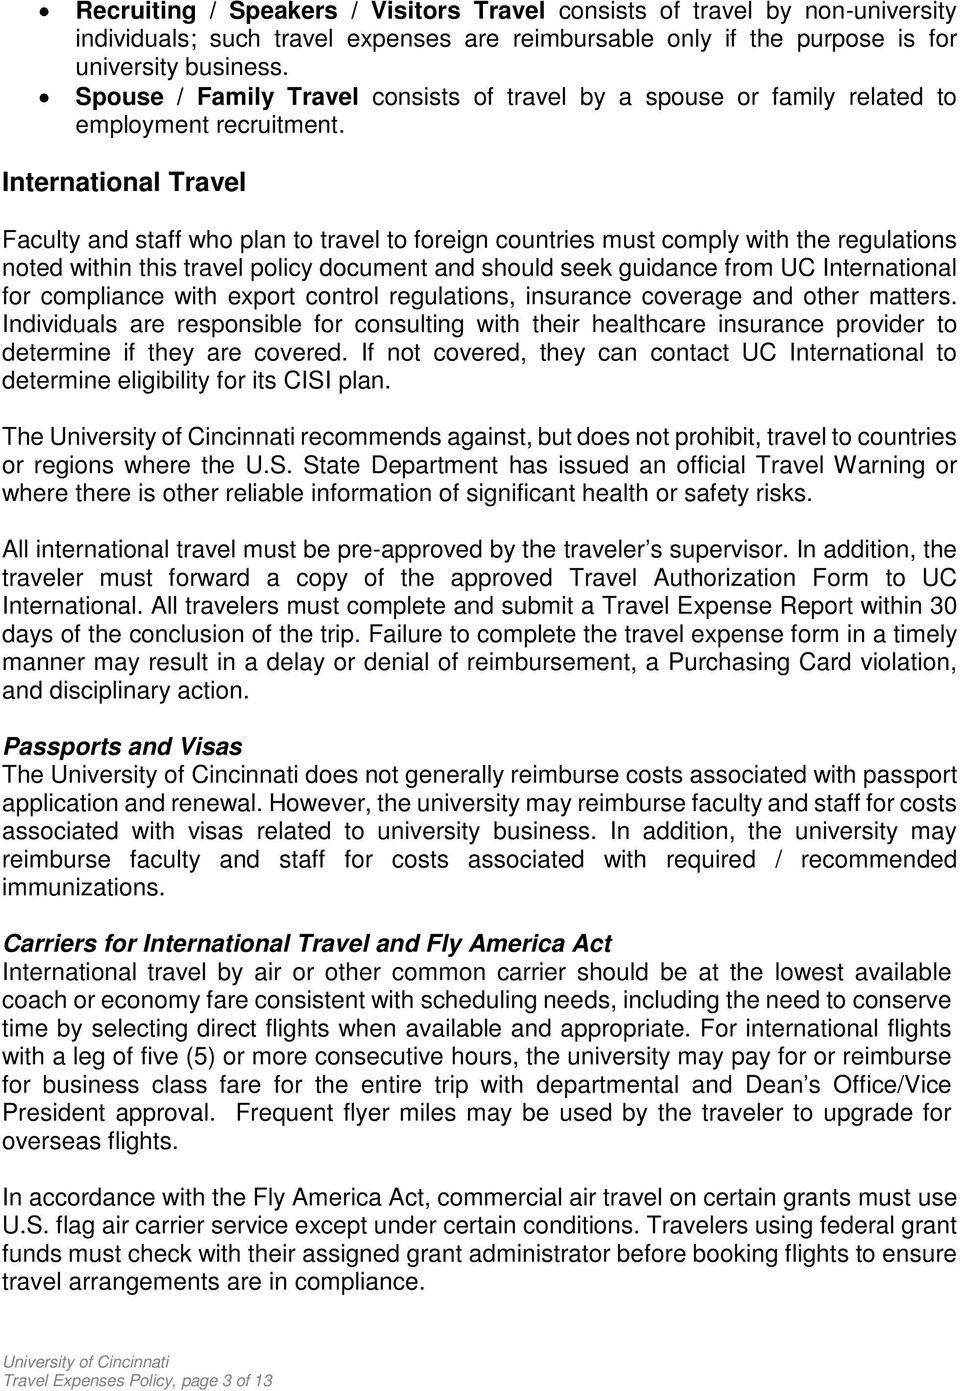 International Travel Faculty and staff who plan to travel to foreign countries must comply with the regulations noted within this travel policy document and should seek guidance from UC International